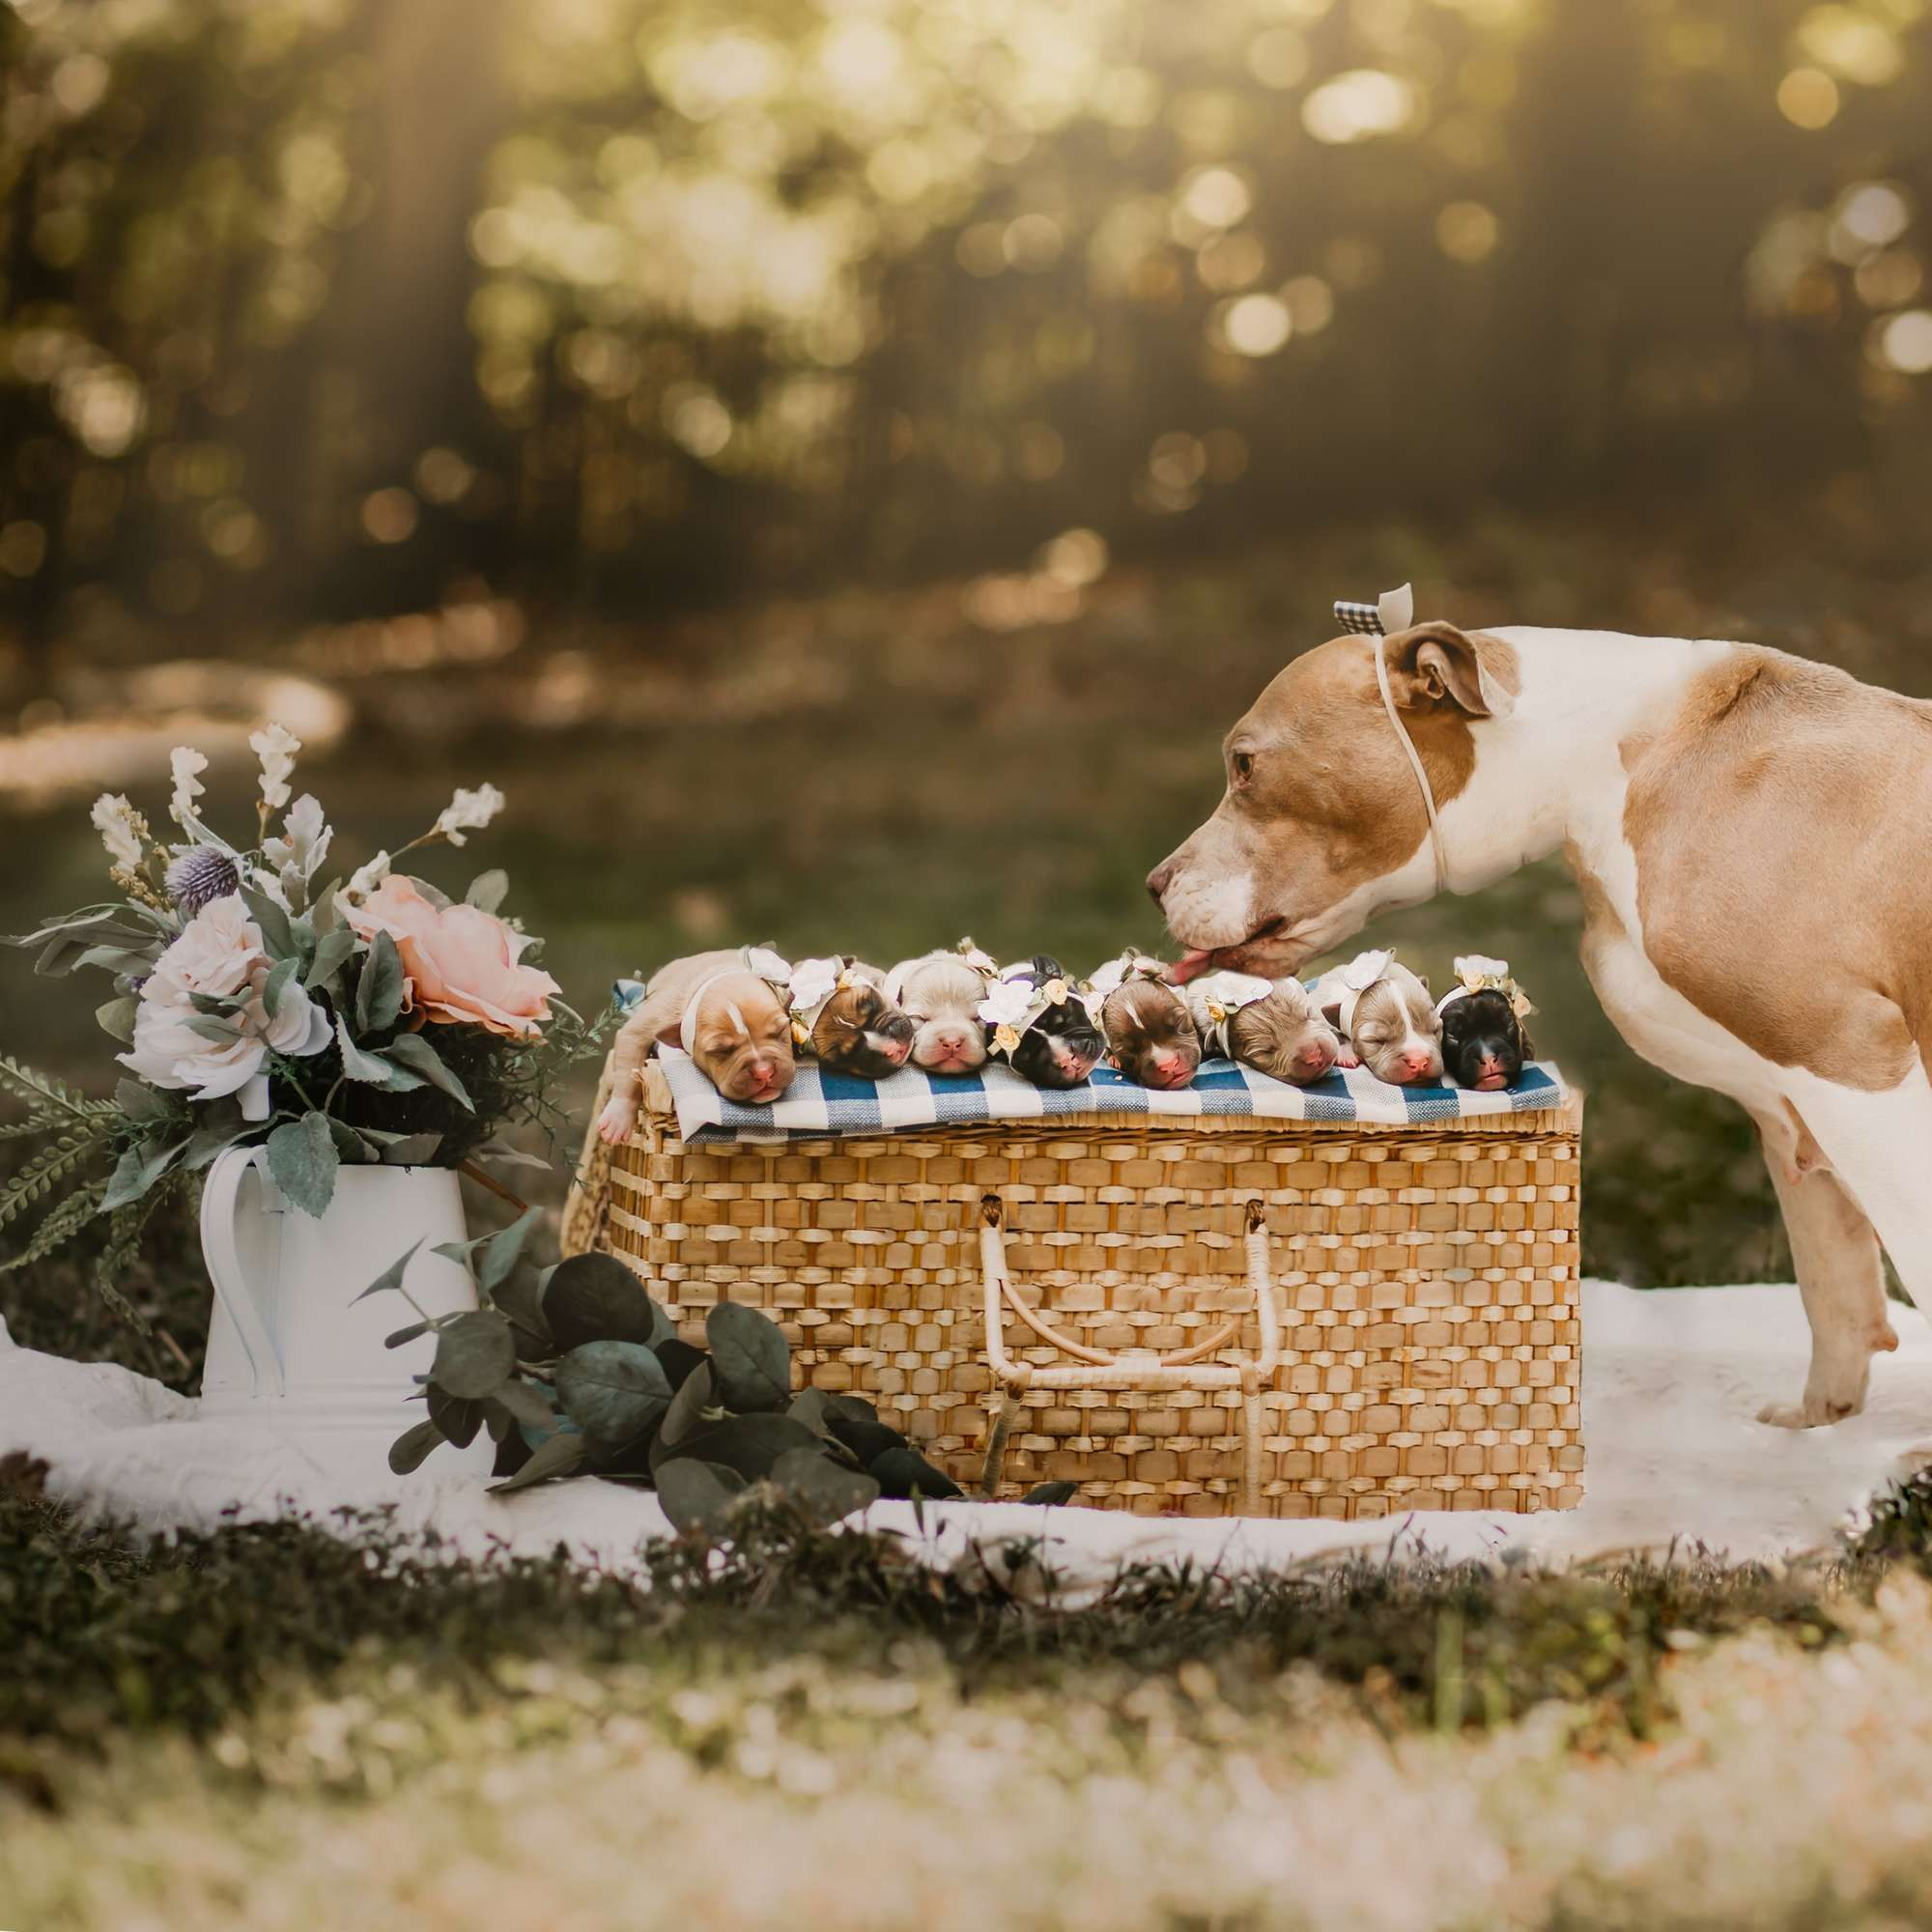 Rescue Pittie Is Glowing In Her Very Own Maternity Shoot In 2020 Pregnant Dog Dog Photoshoot Puppy Litter